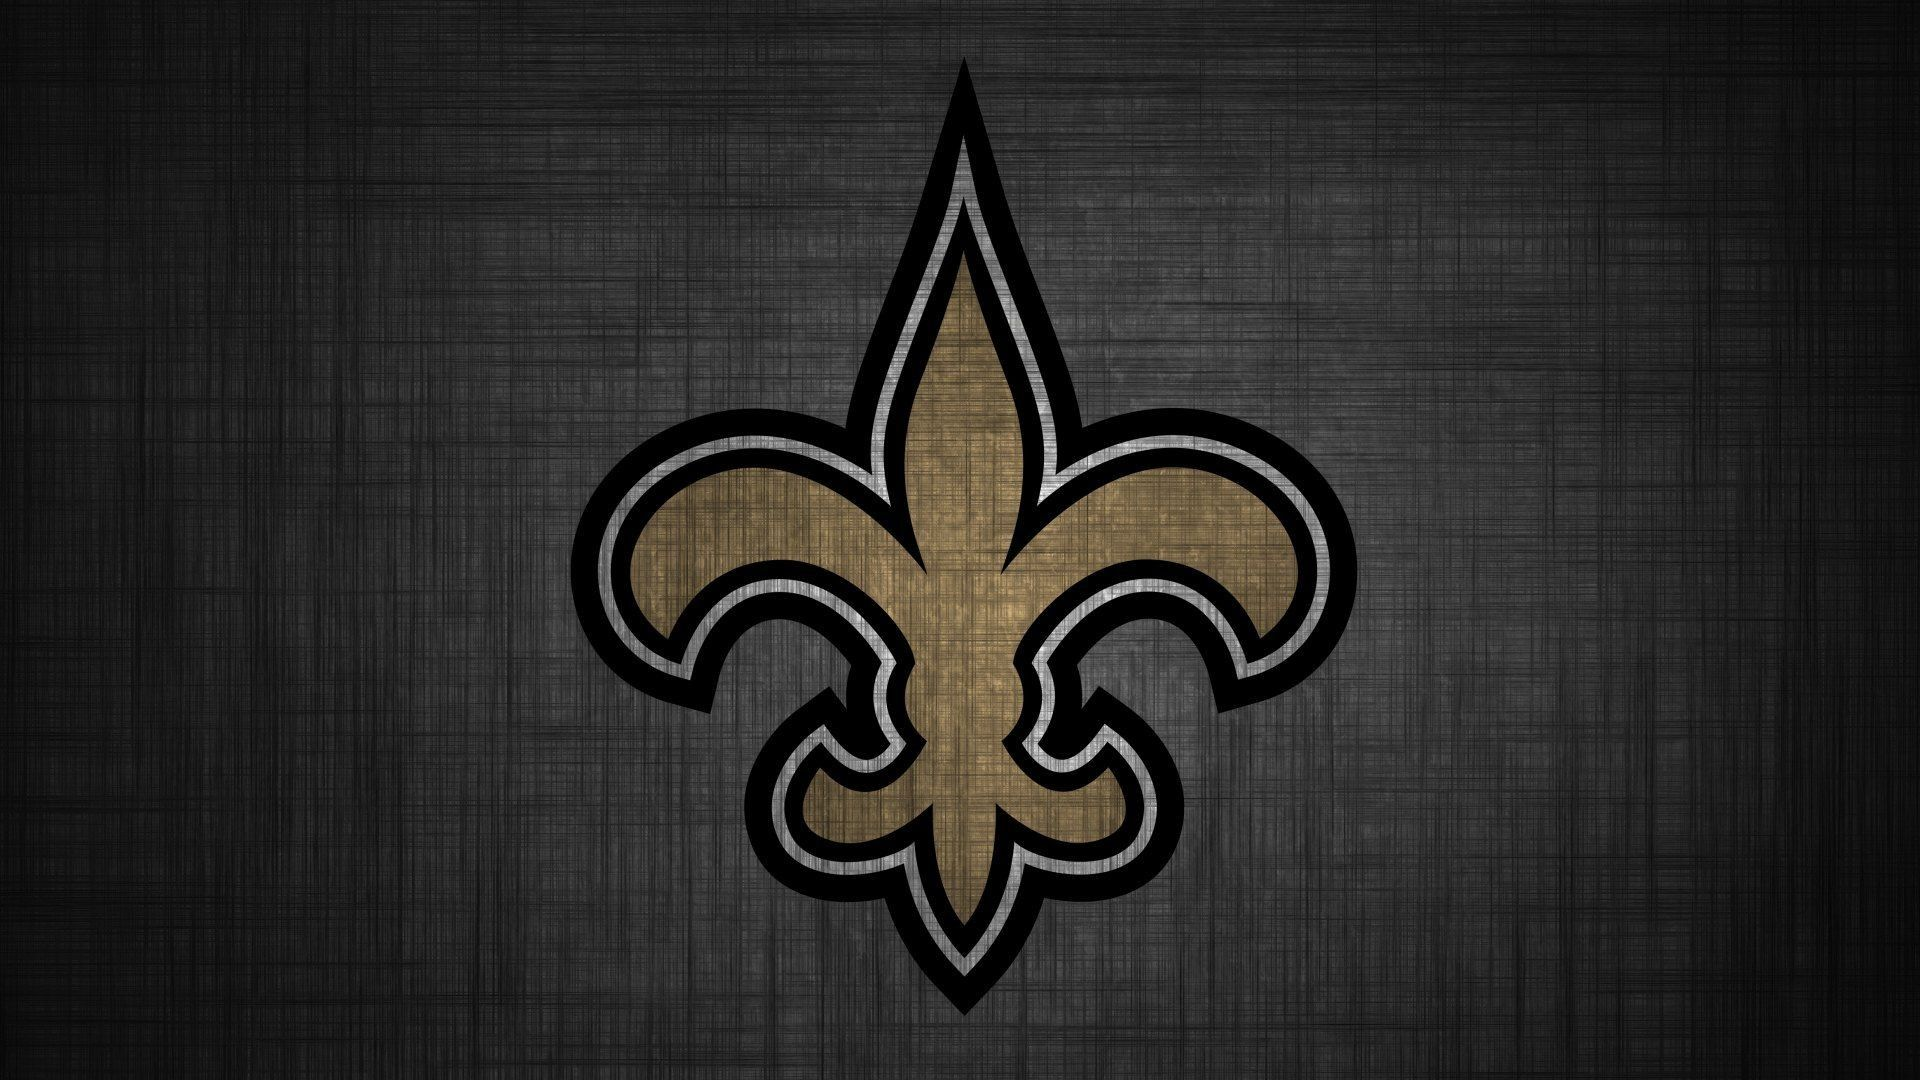 New Orleans Saints NFL Wallpaper HD | Best Wallpaper HD